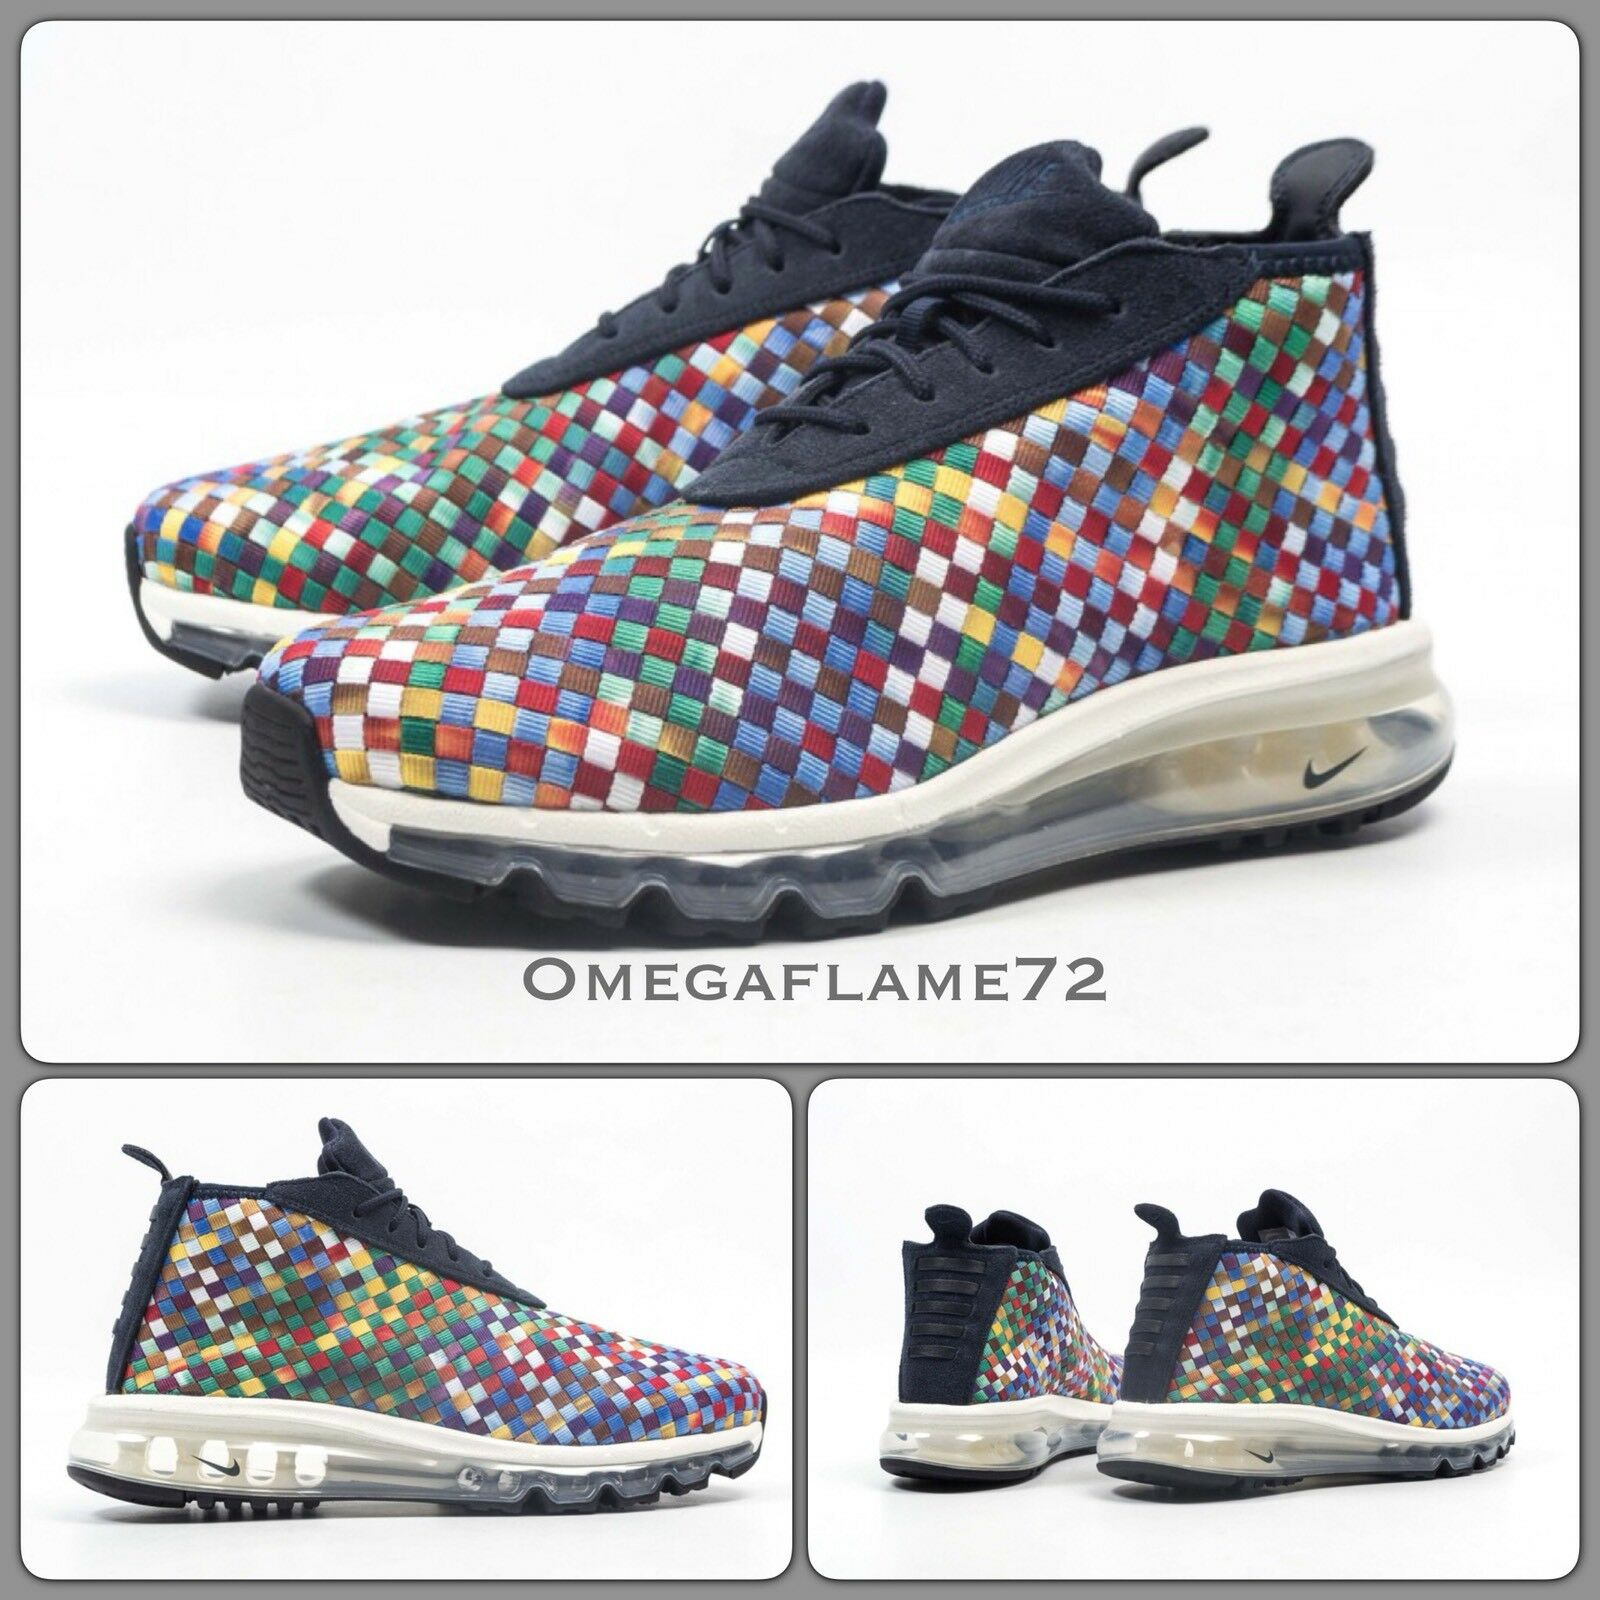 Nike Air Max Woven Boot, Multicoloured, AH8139-400,9, EU 44, US 10